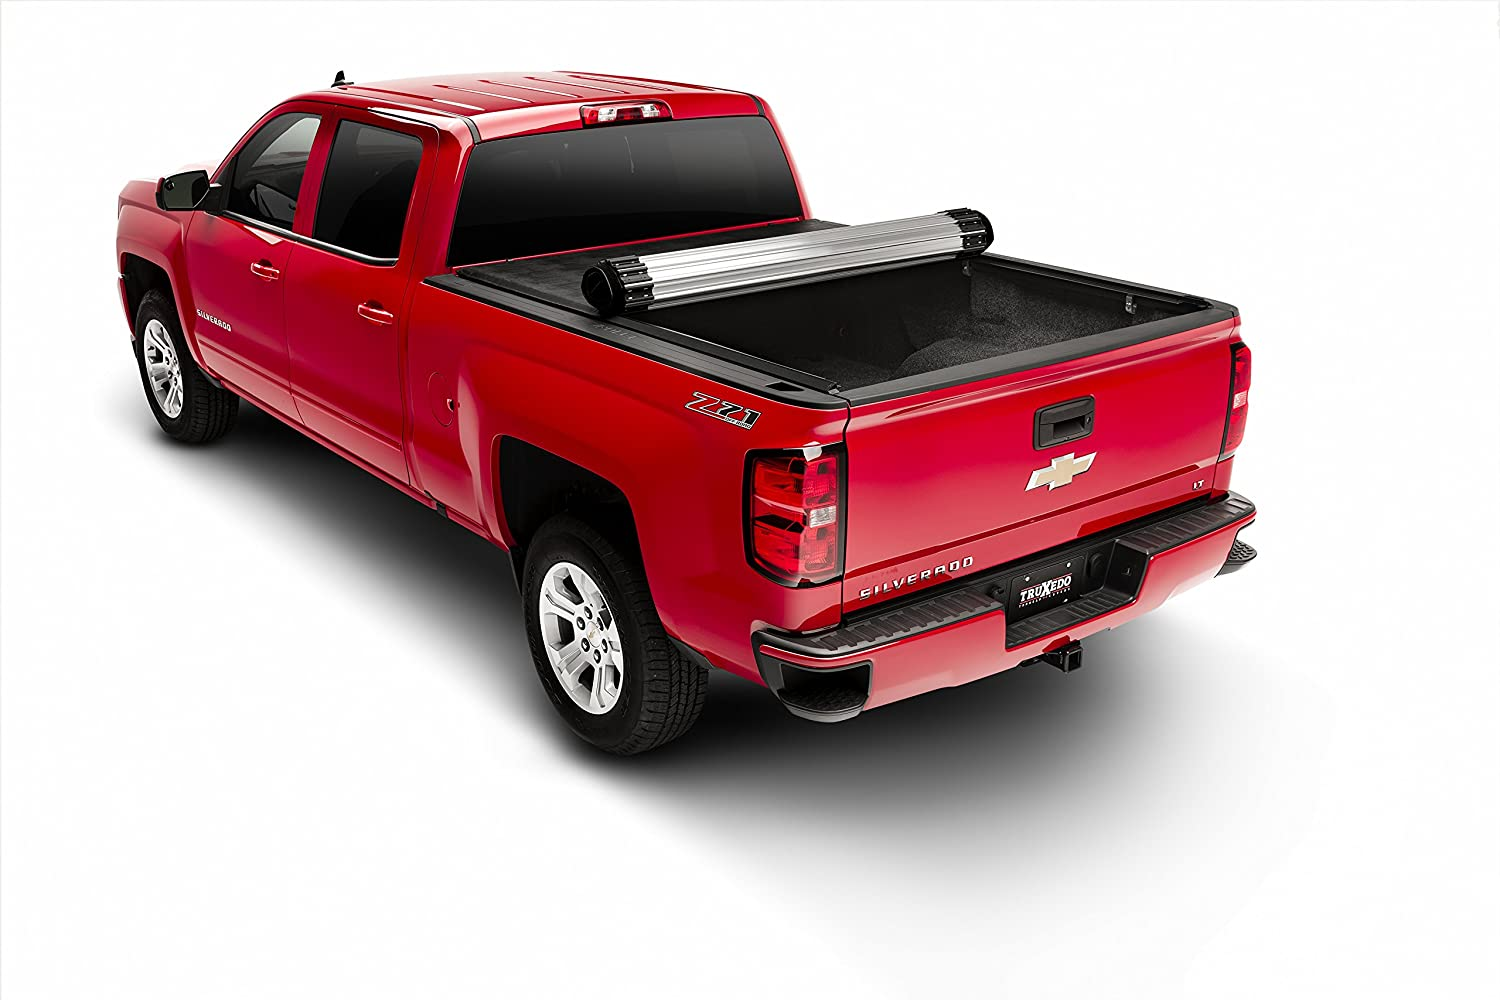 Truxedo Titanium Roll-up Truck Bed Cover 971801